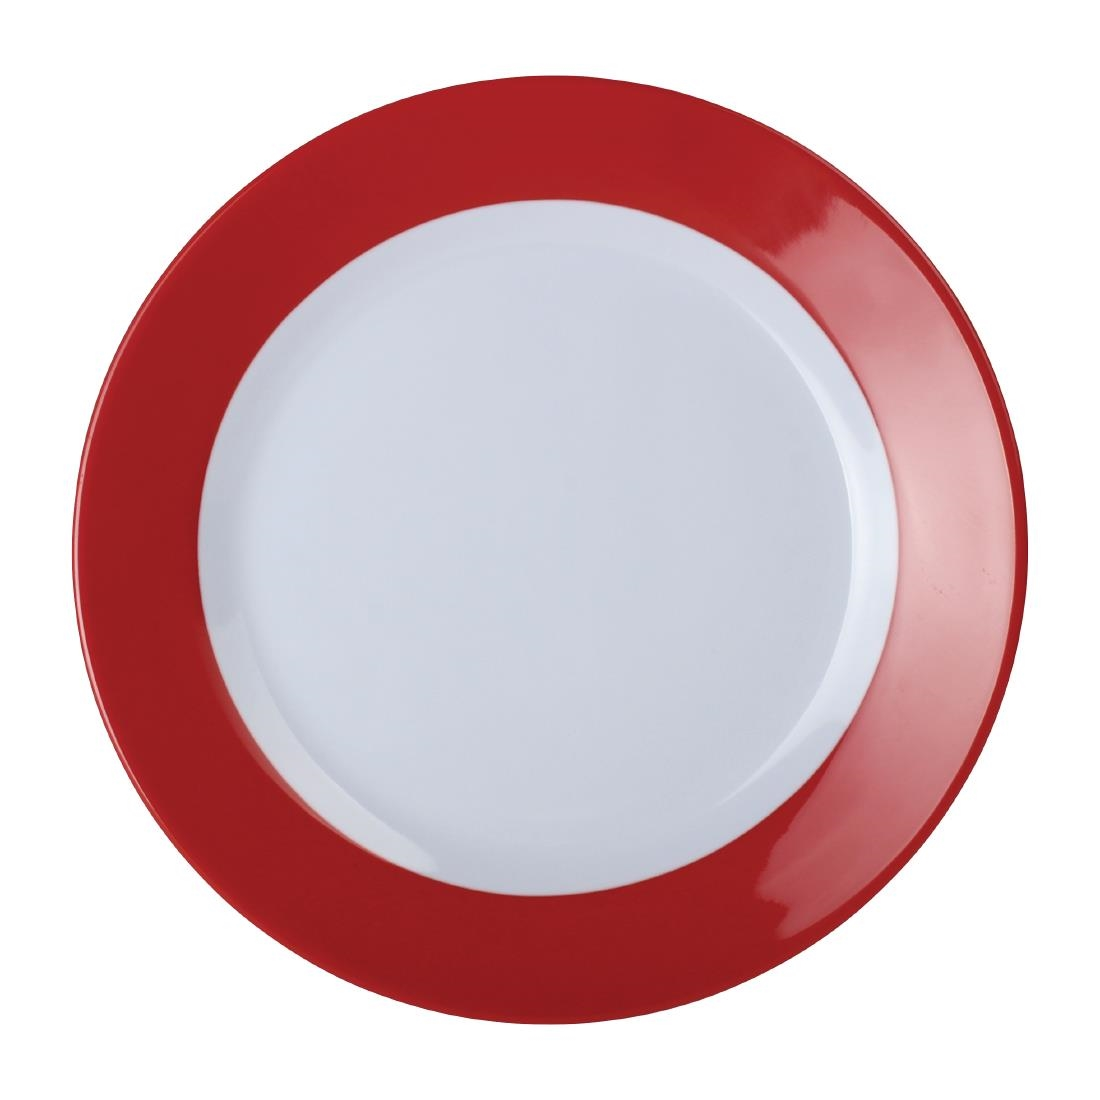 Gala Plate - Red